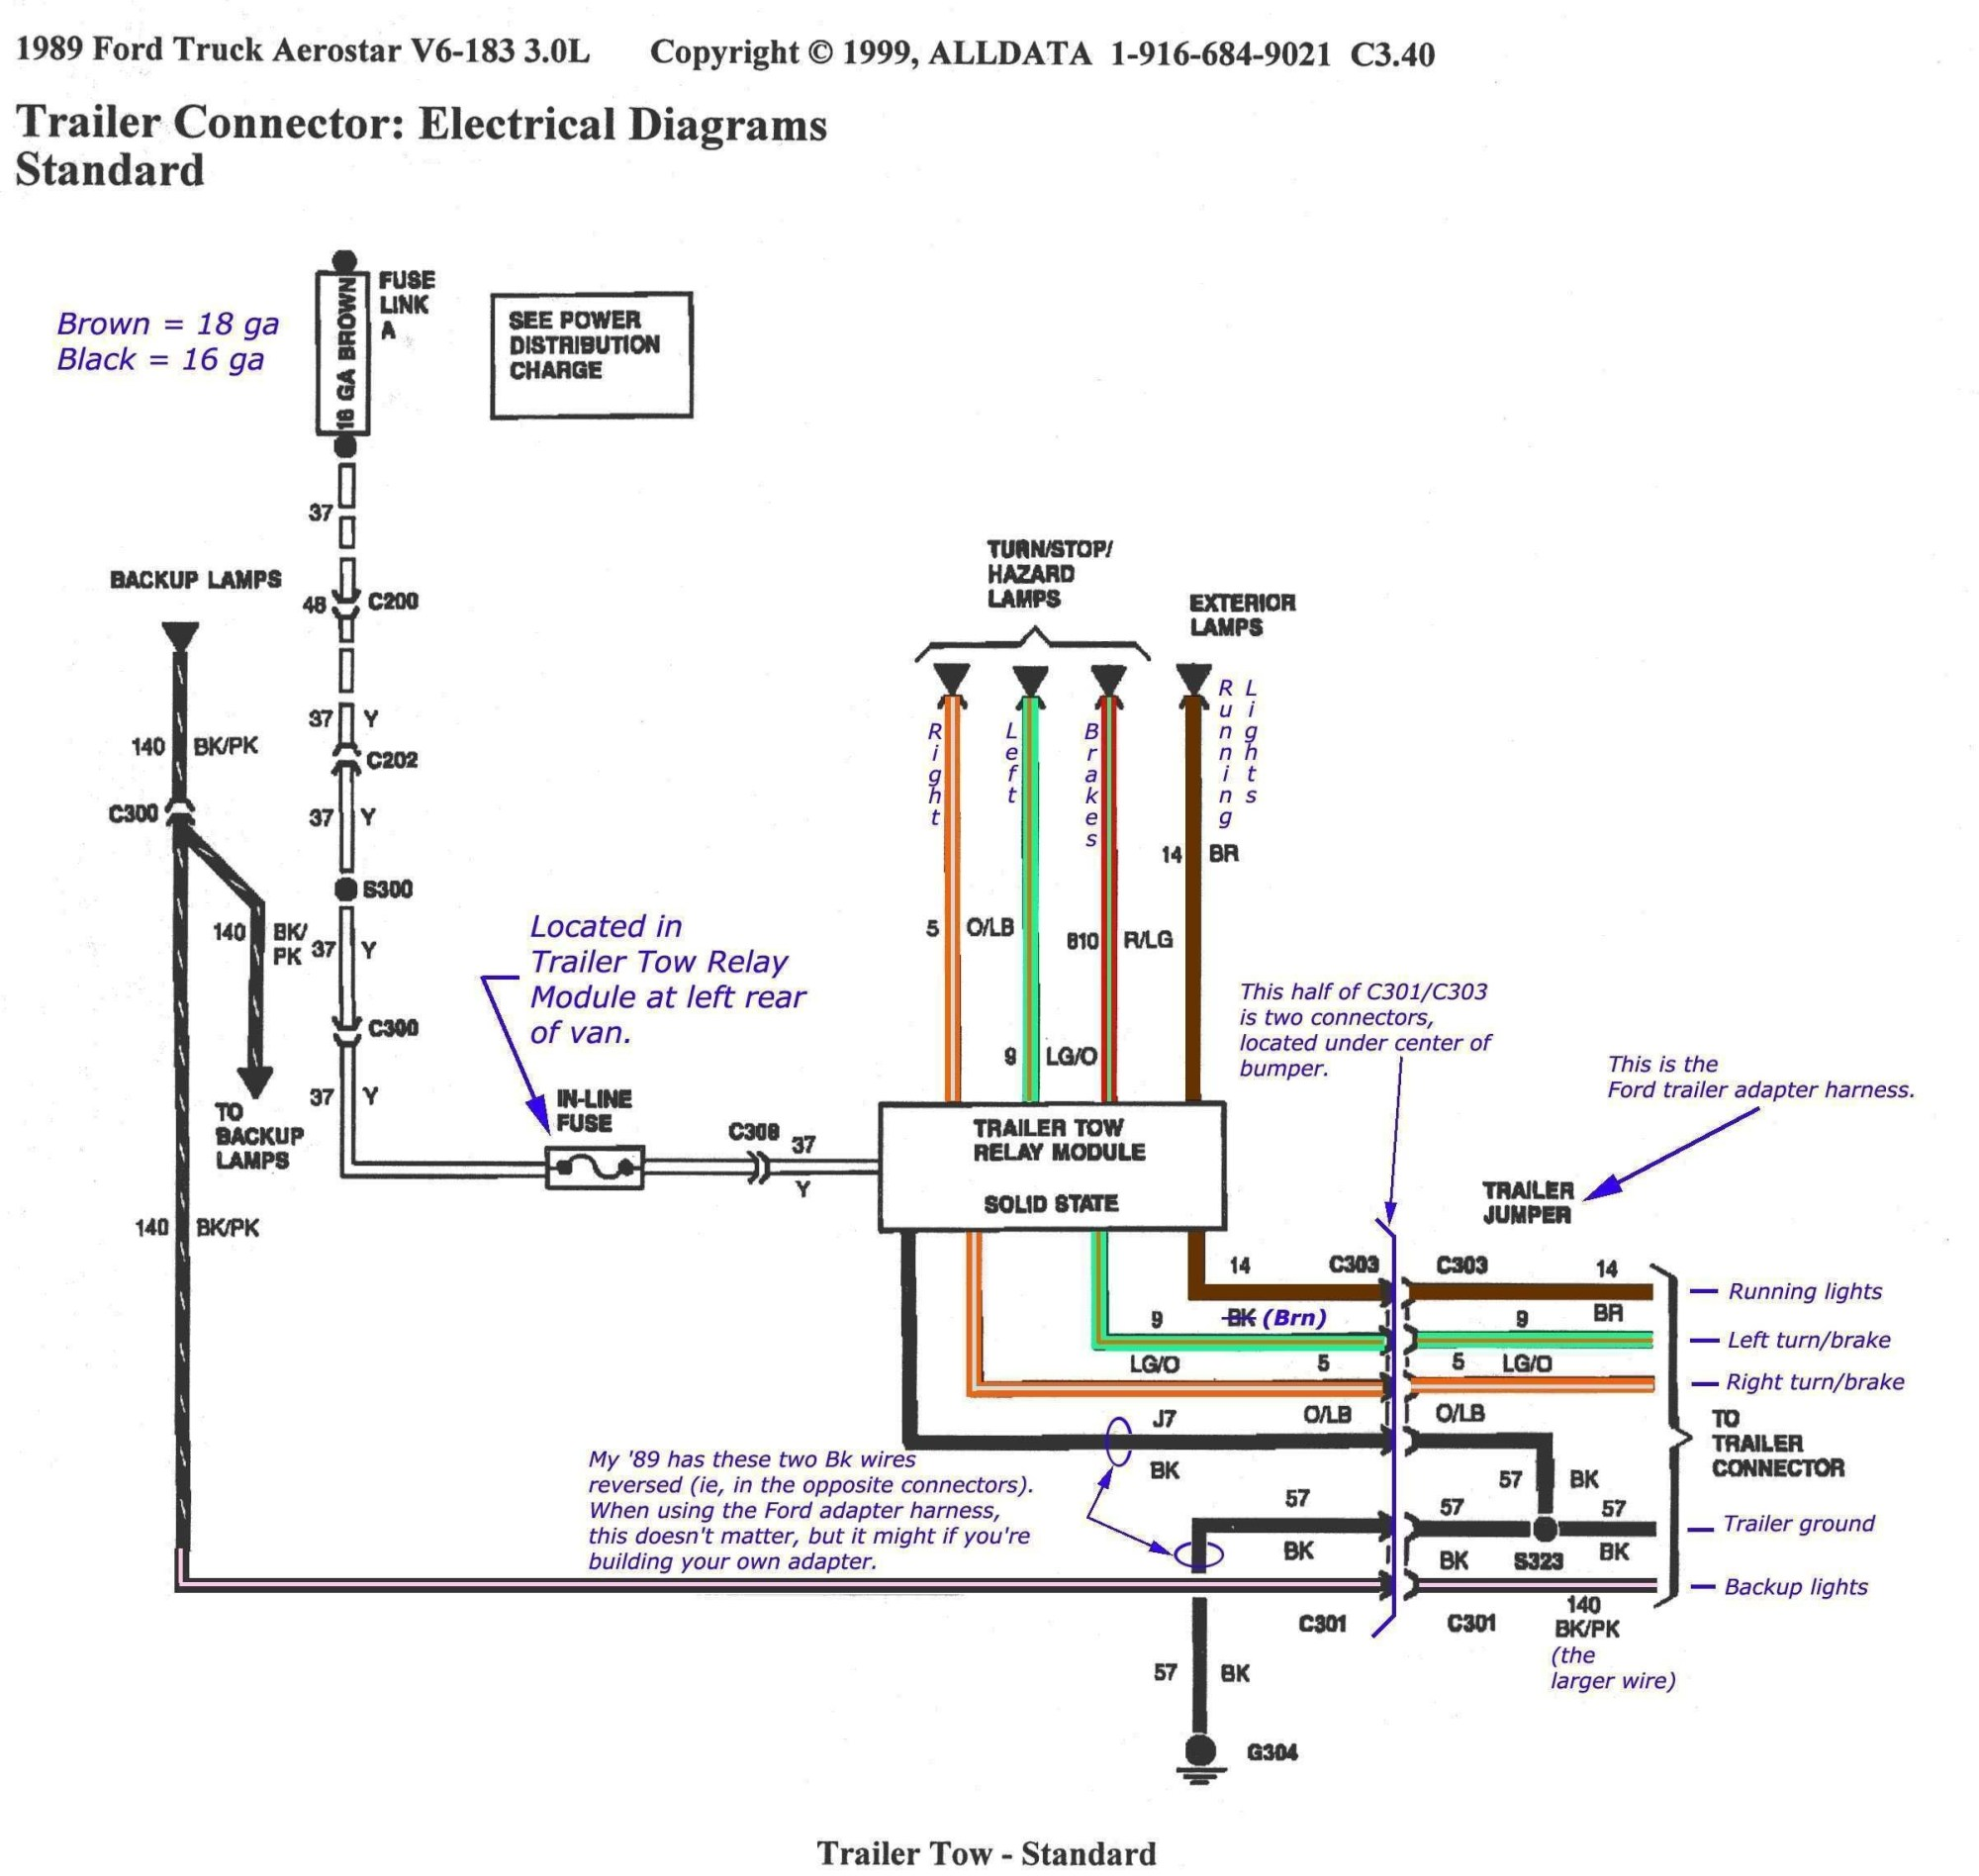 hight resolution of trailer light wiring harness problems wiring diagram fascinating troubleshooting wire diagram troubleshooting wire diagram